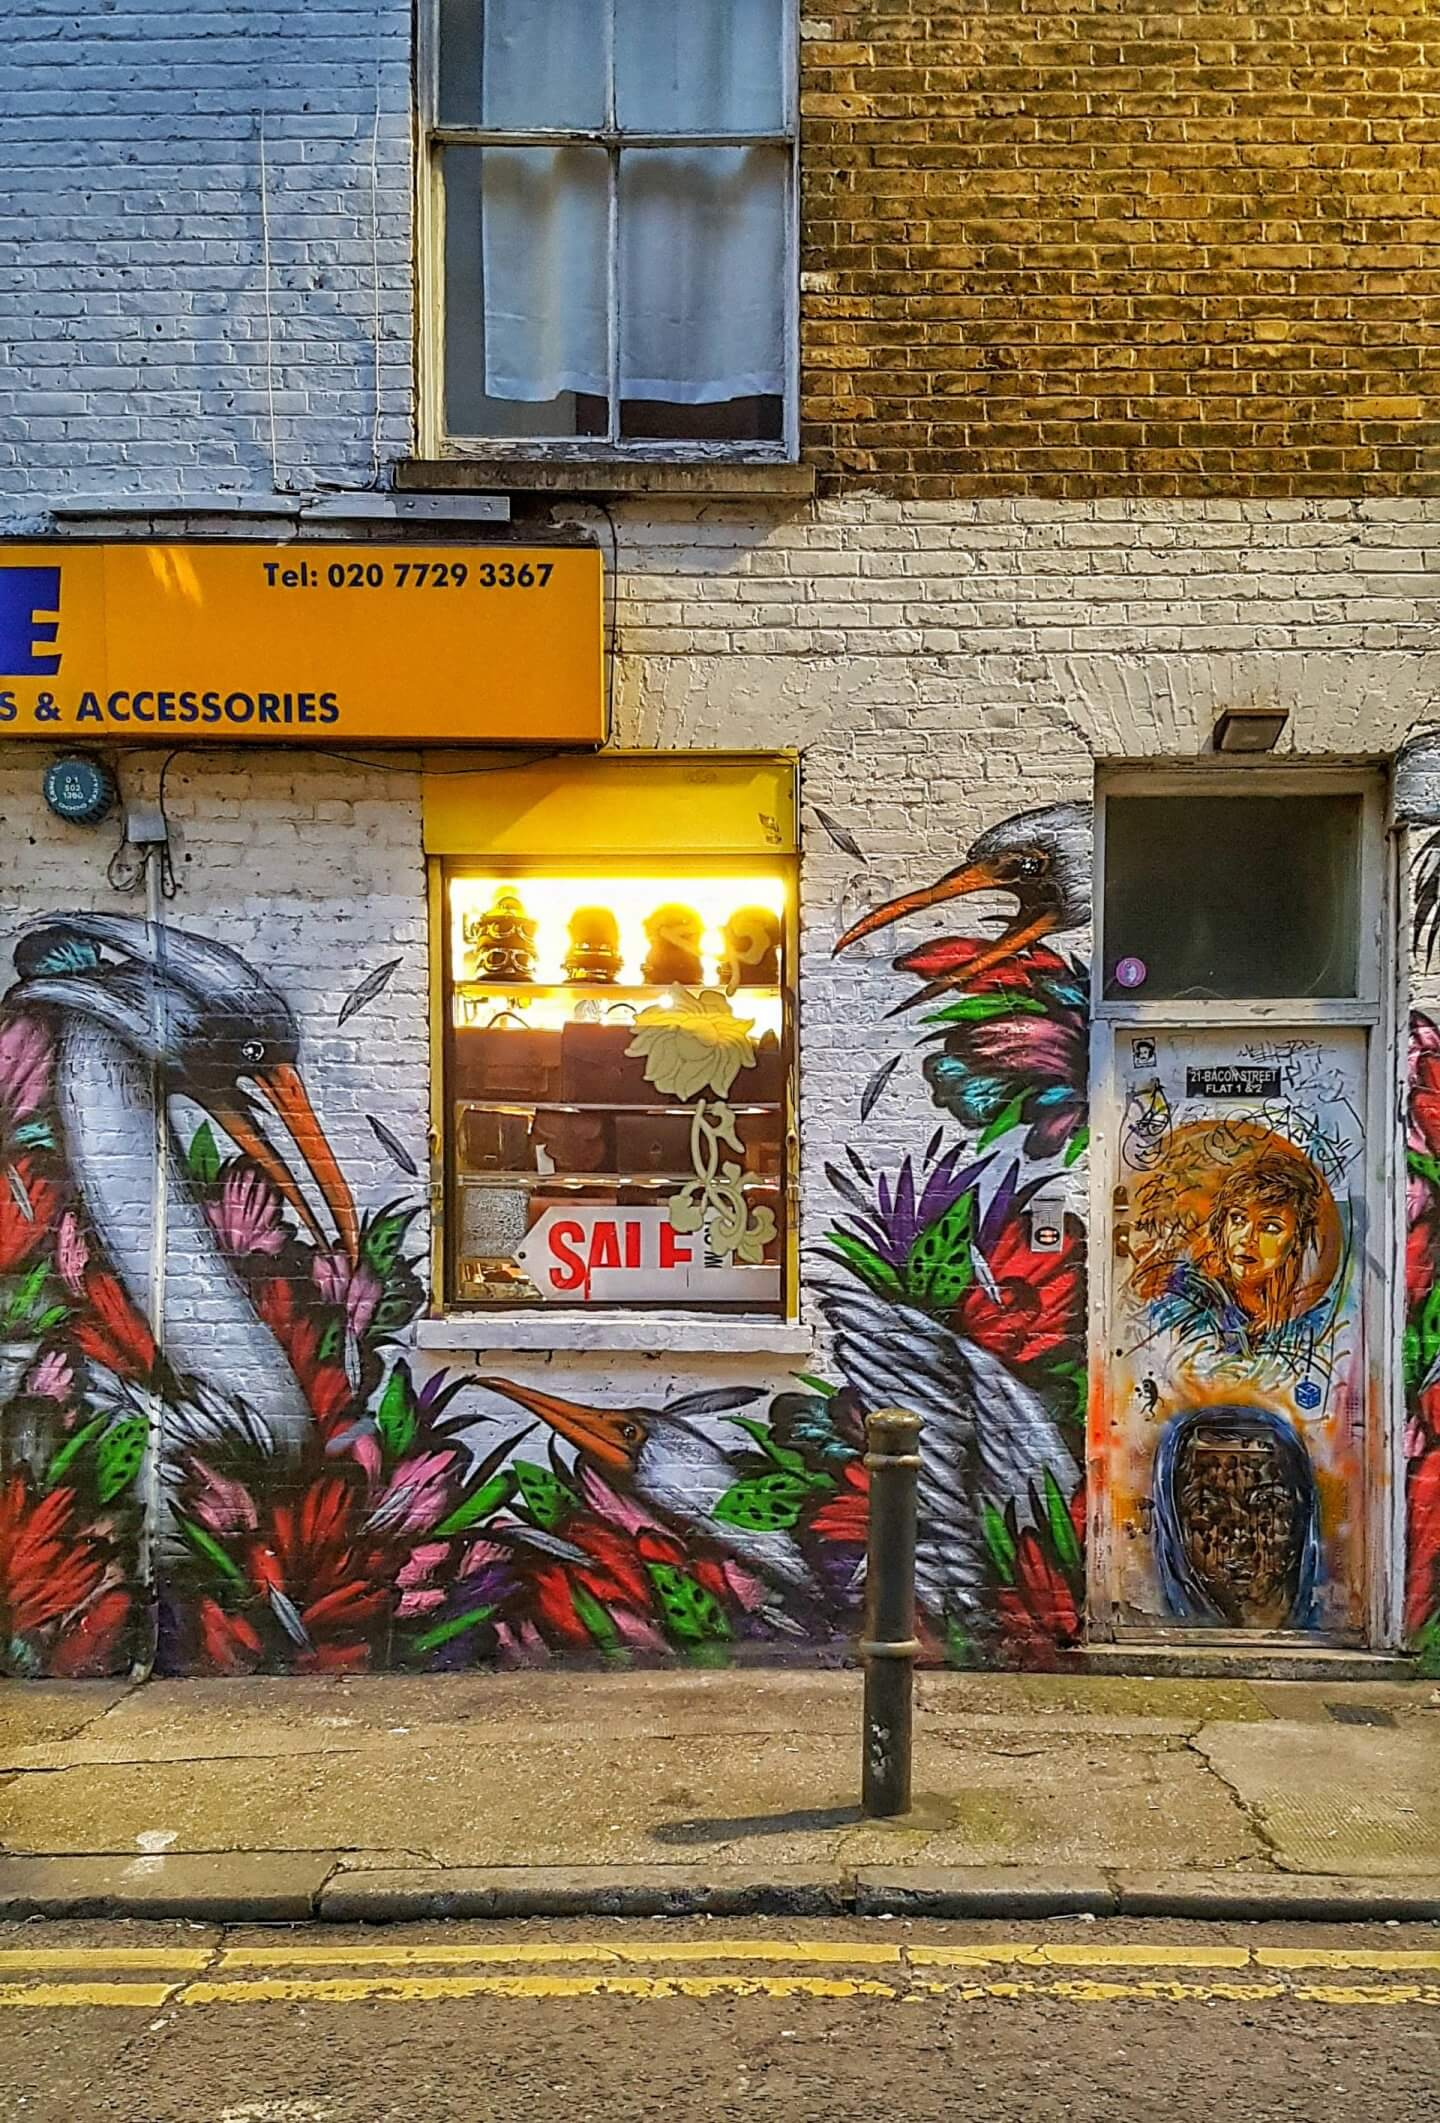 brick lane street art london where is tara povey top irish travel blogger